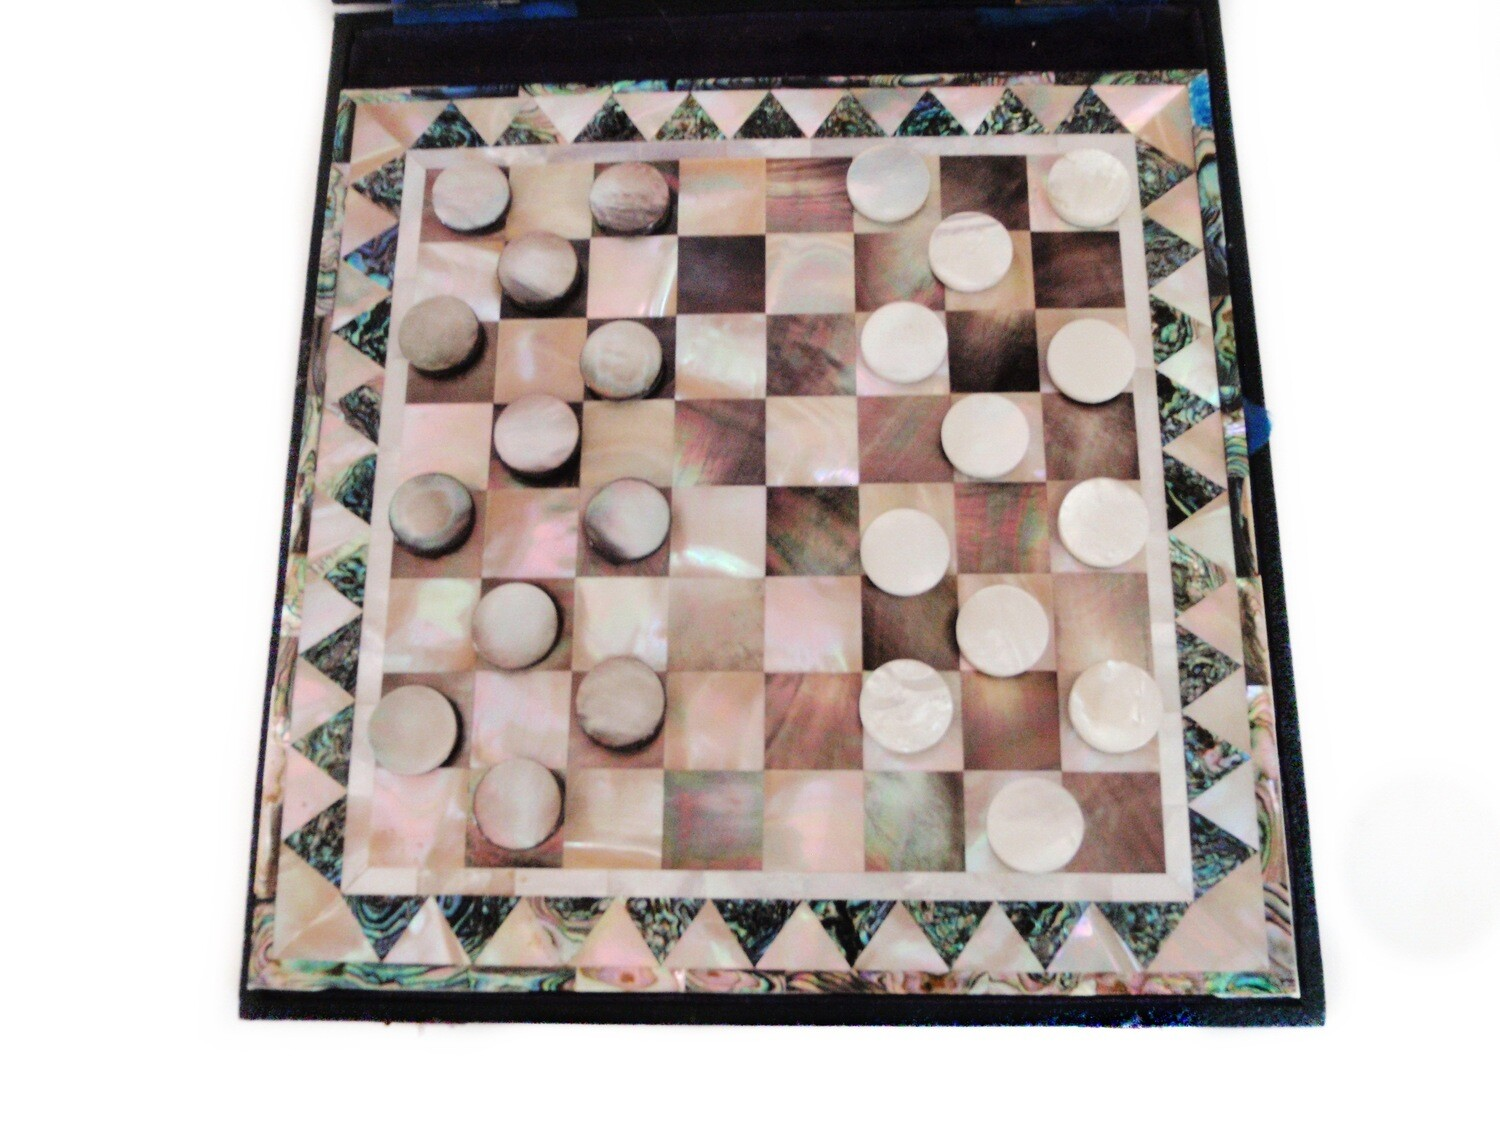 Art Deco Mother of Pearl Boxed Checkers Game Board